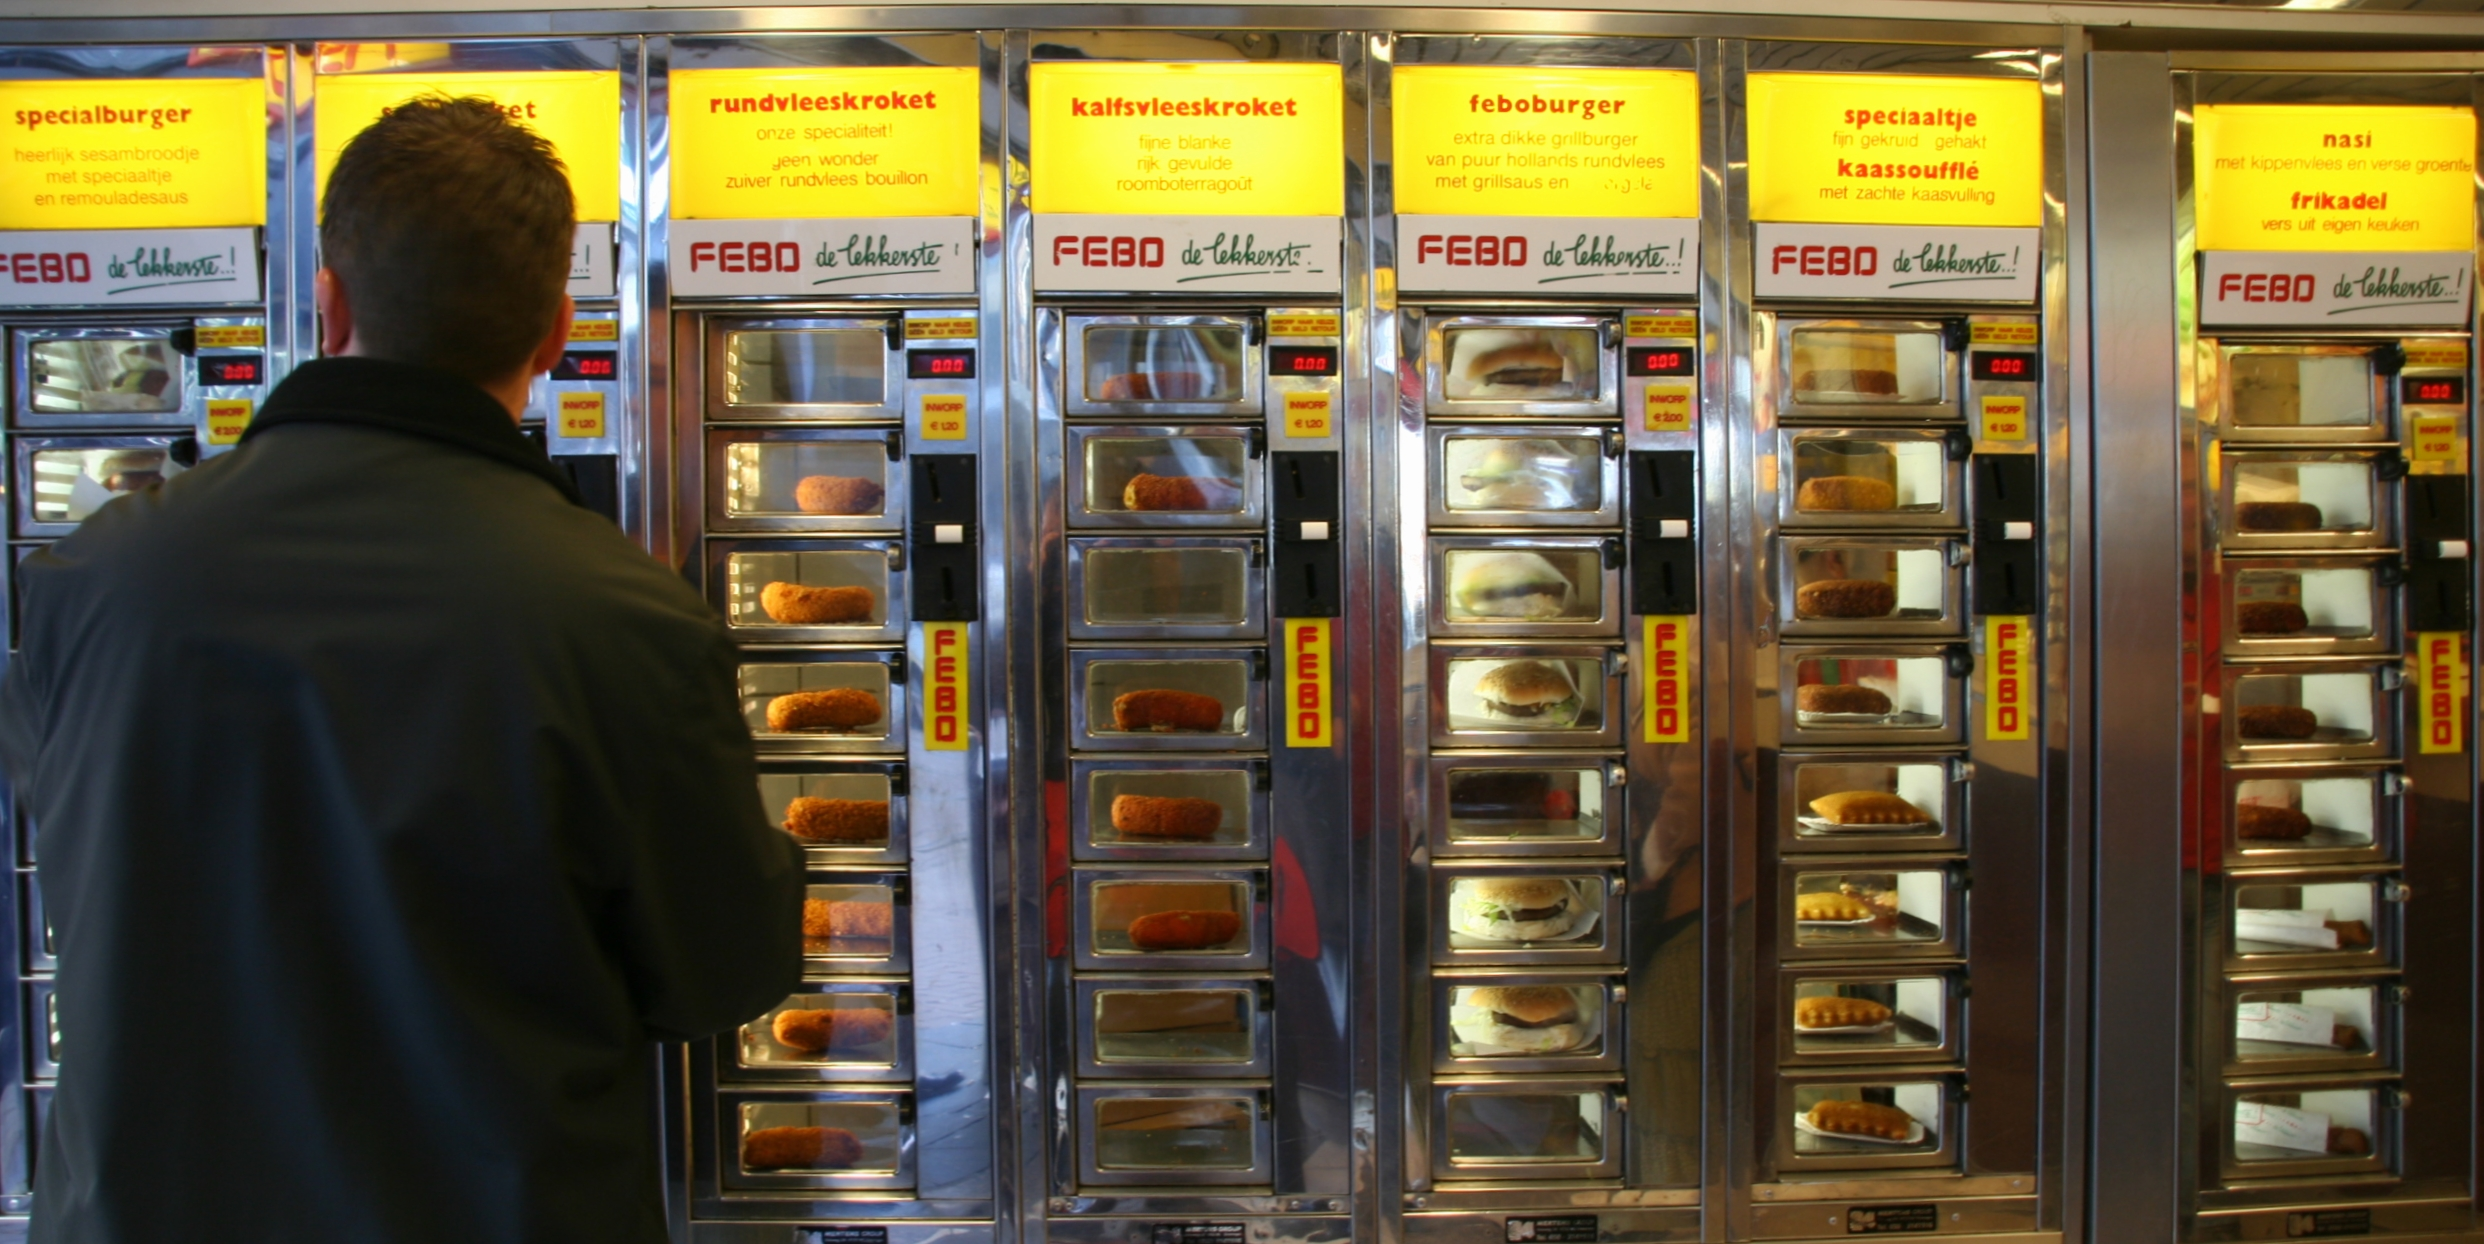 Datei:DISTRIBUTEURS-febo.jpg – Wikipedia